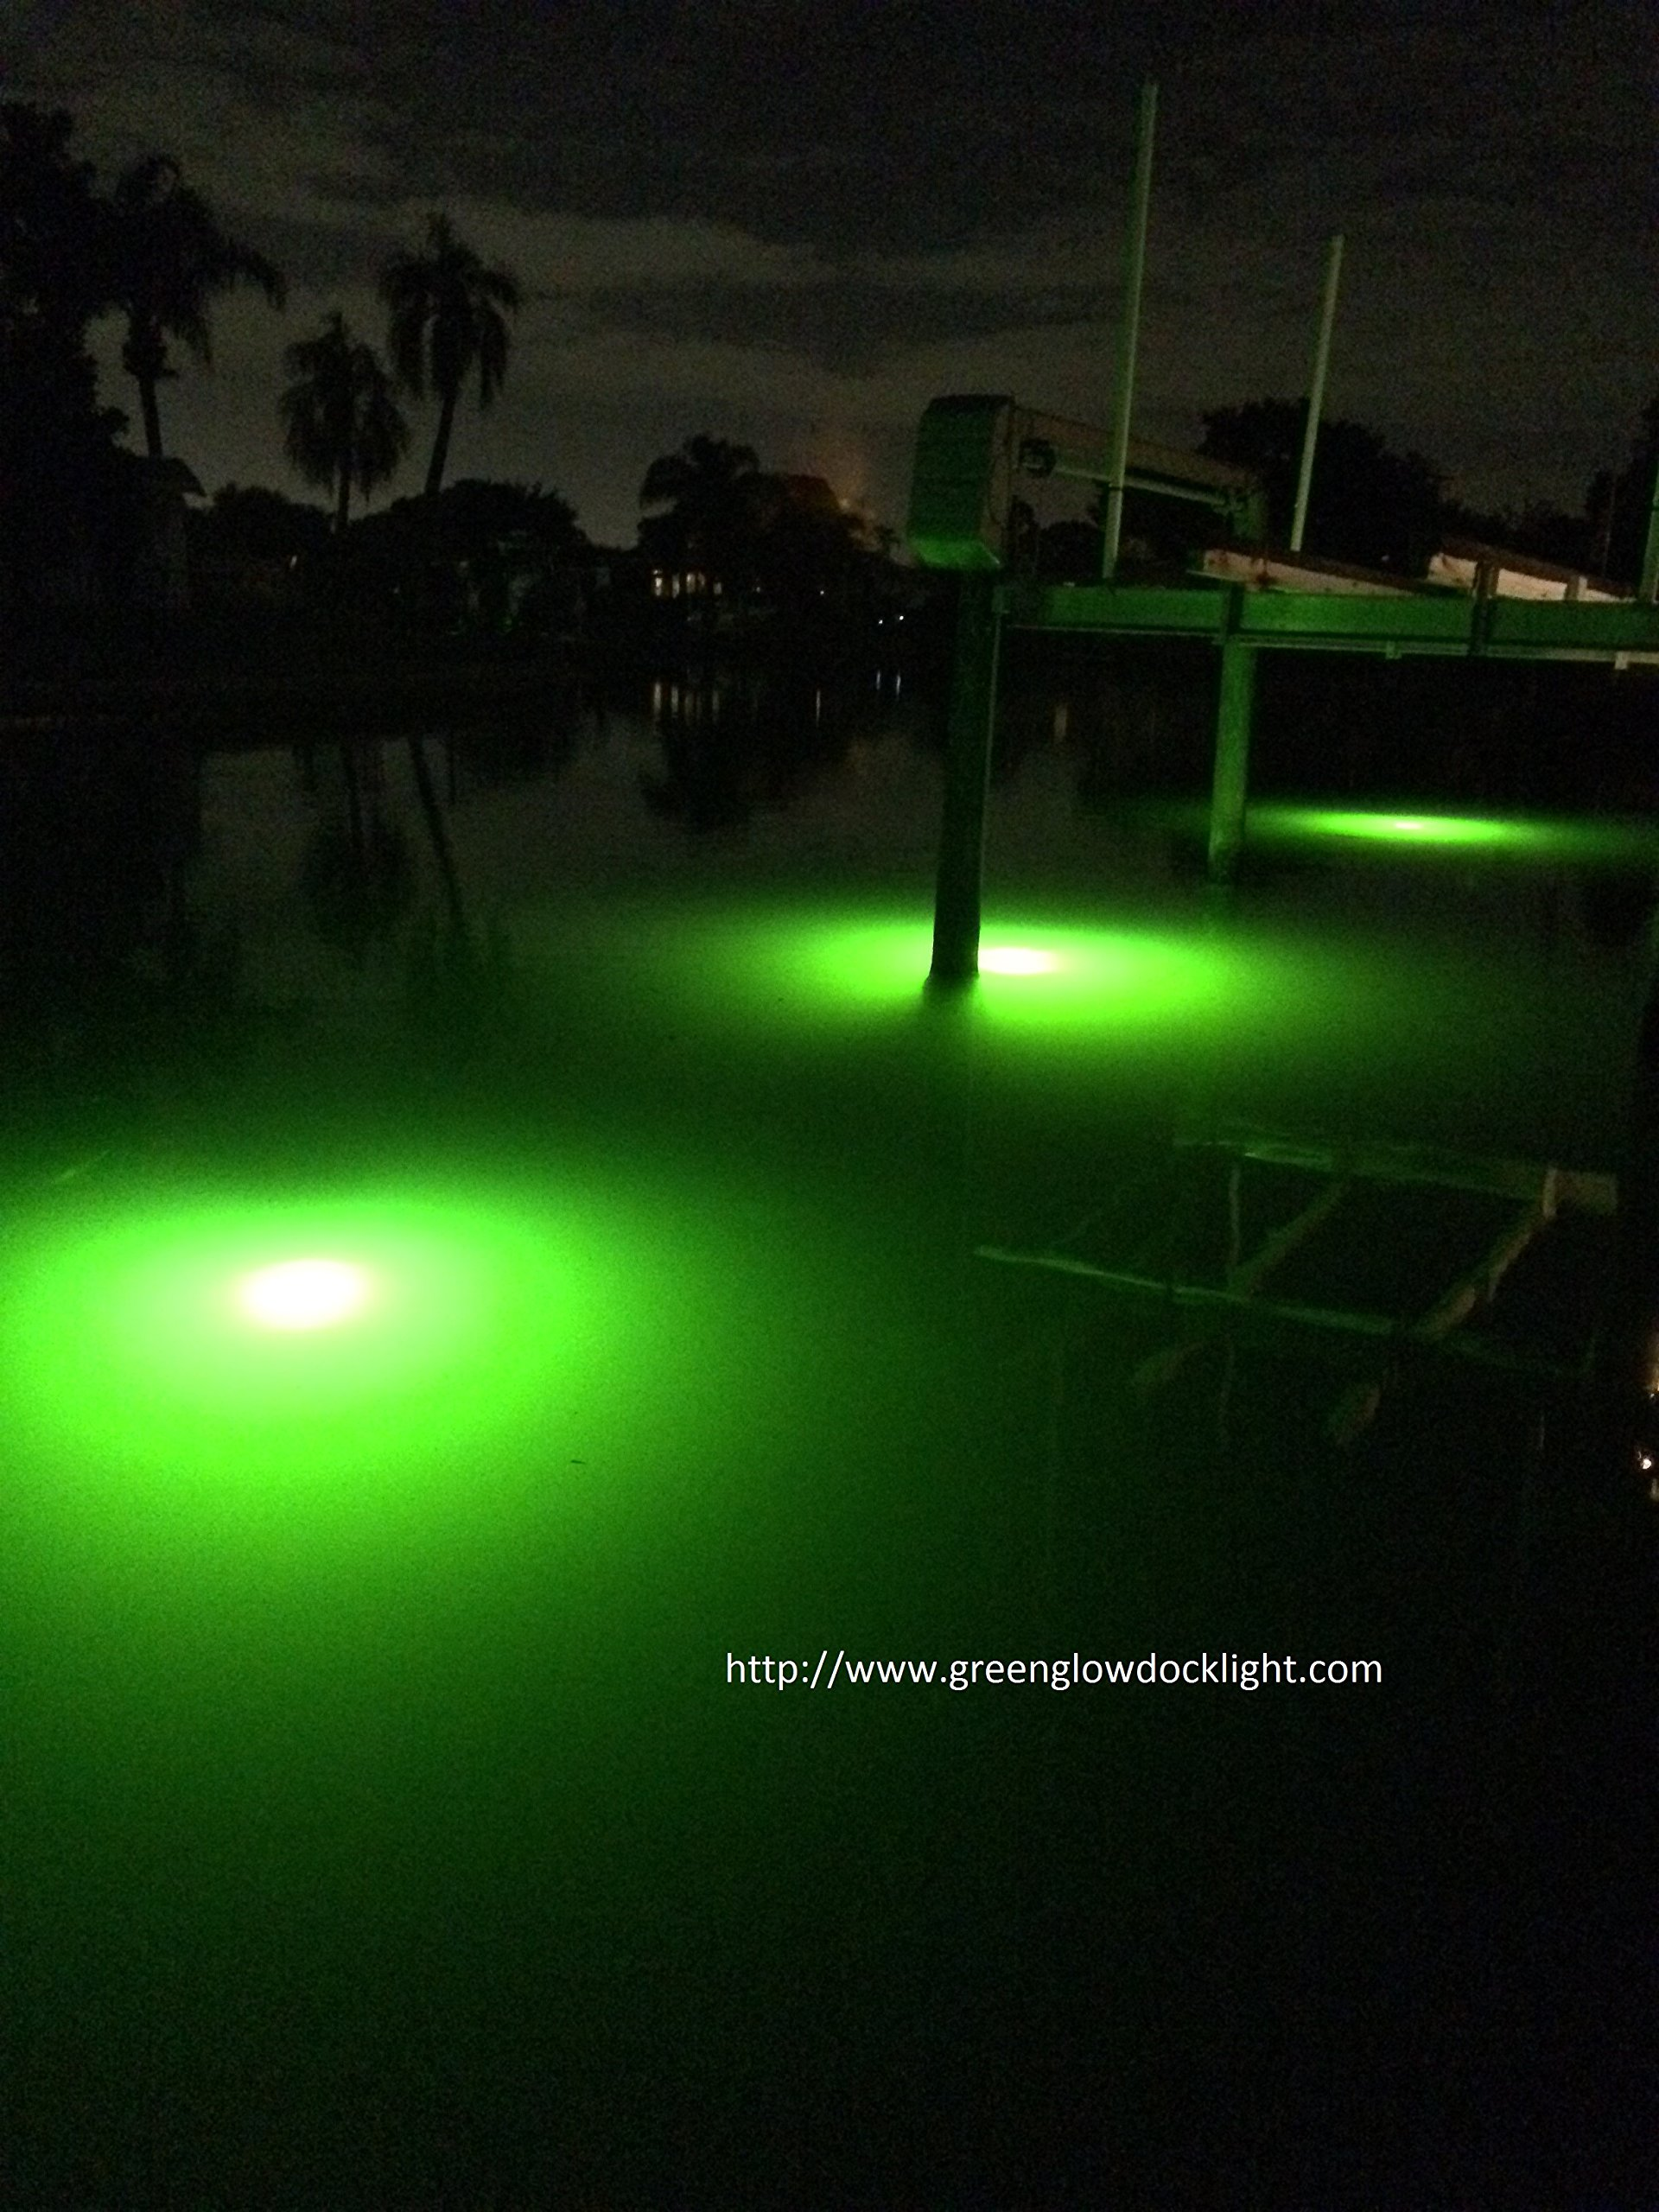 Bright Green Underwater Fishing Lights, Double Lamp Kit with 50' Cords Saltwater or Fresh by Green Glow Dock Light (Image #4)